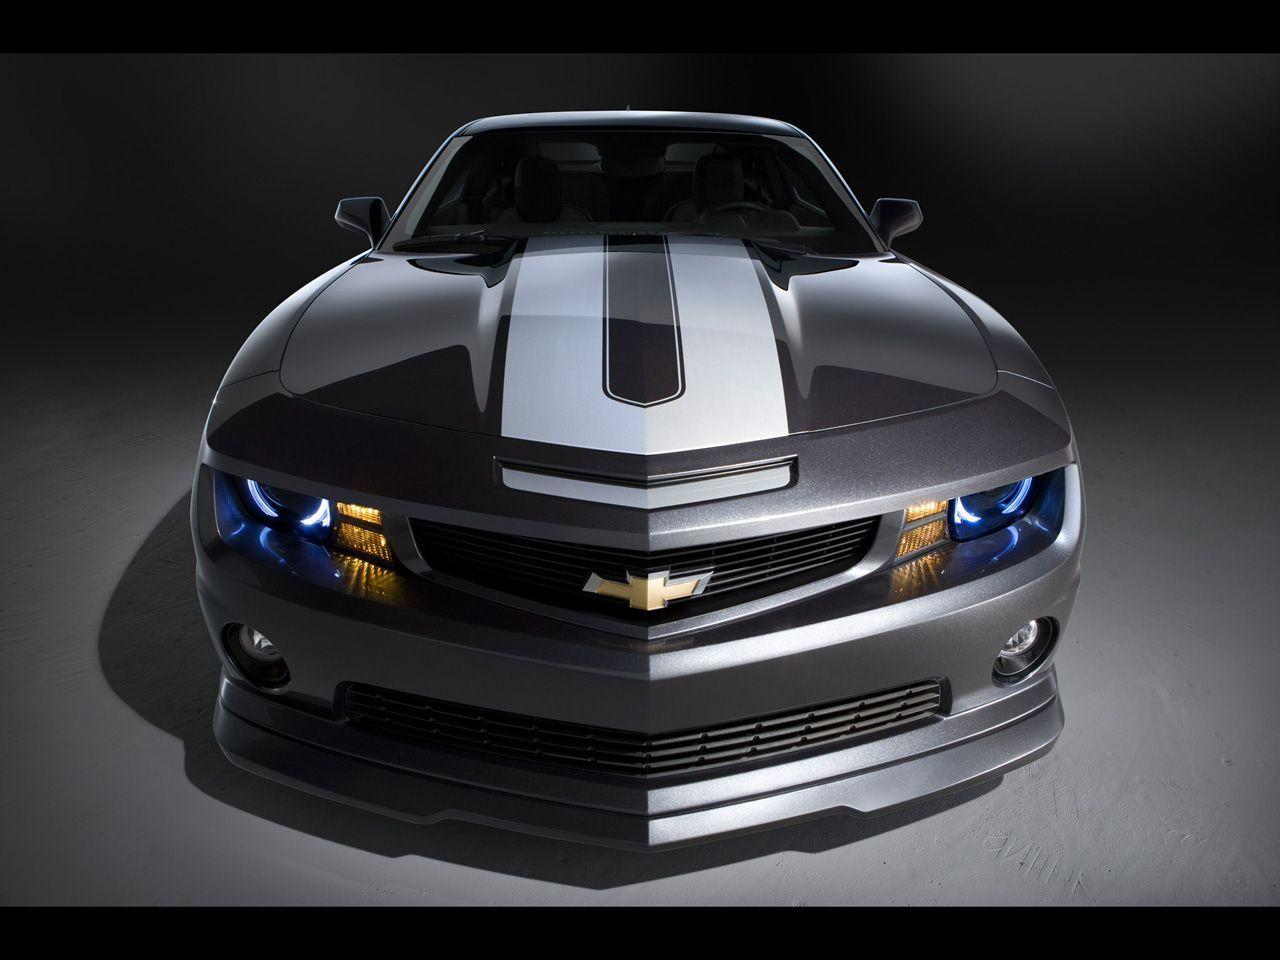 Black Chevrolet Camaro Wallpapers | High Definition Wallpapers ...